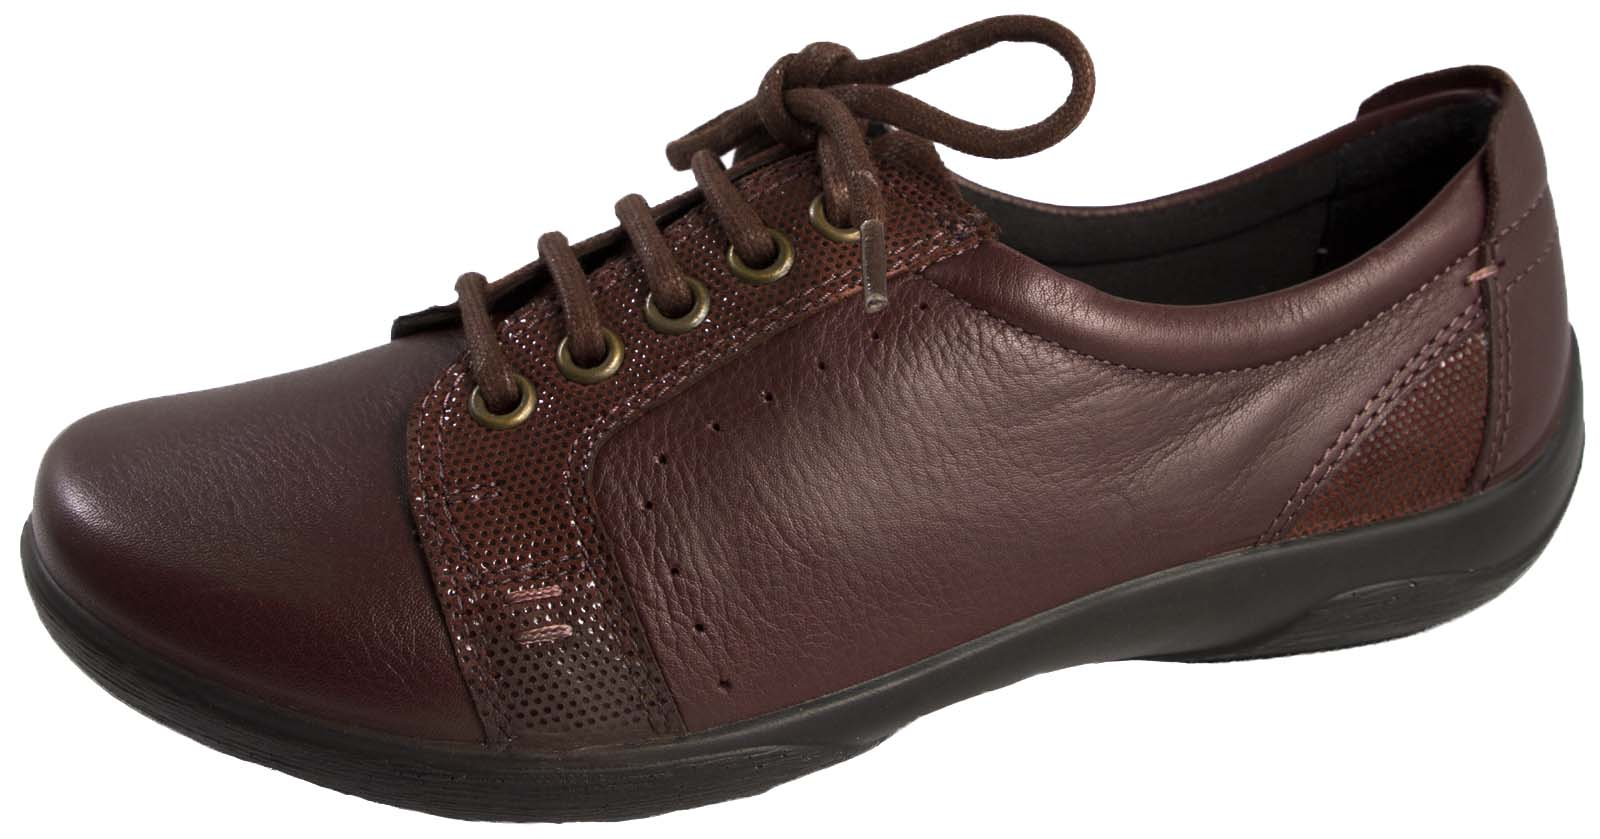 Padders Womens Leather Comfort Shoes Wide Fitting Lace Up ...